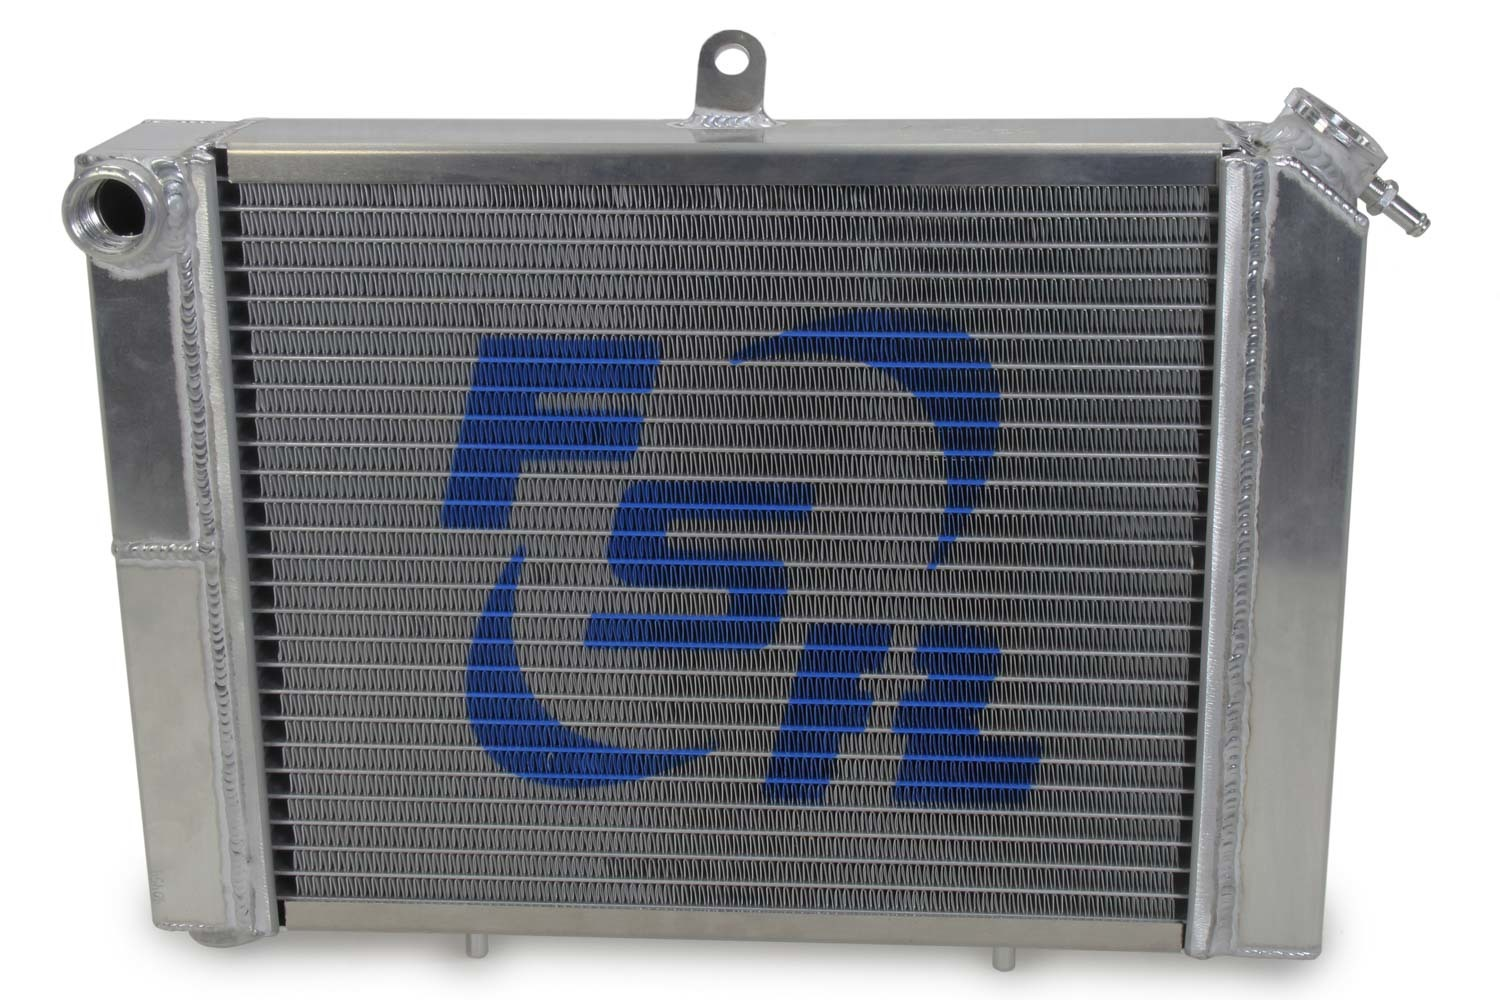 FSR Racing 78302-2 Radiator, 17 in W x 12 in H, Dual Pass, Drivers Side Inlet, Drivers Side Outlet, Cage Mount, Aluminum, Natural, Mini Sprint, Each